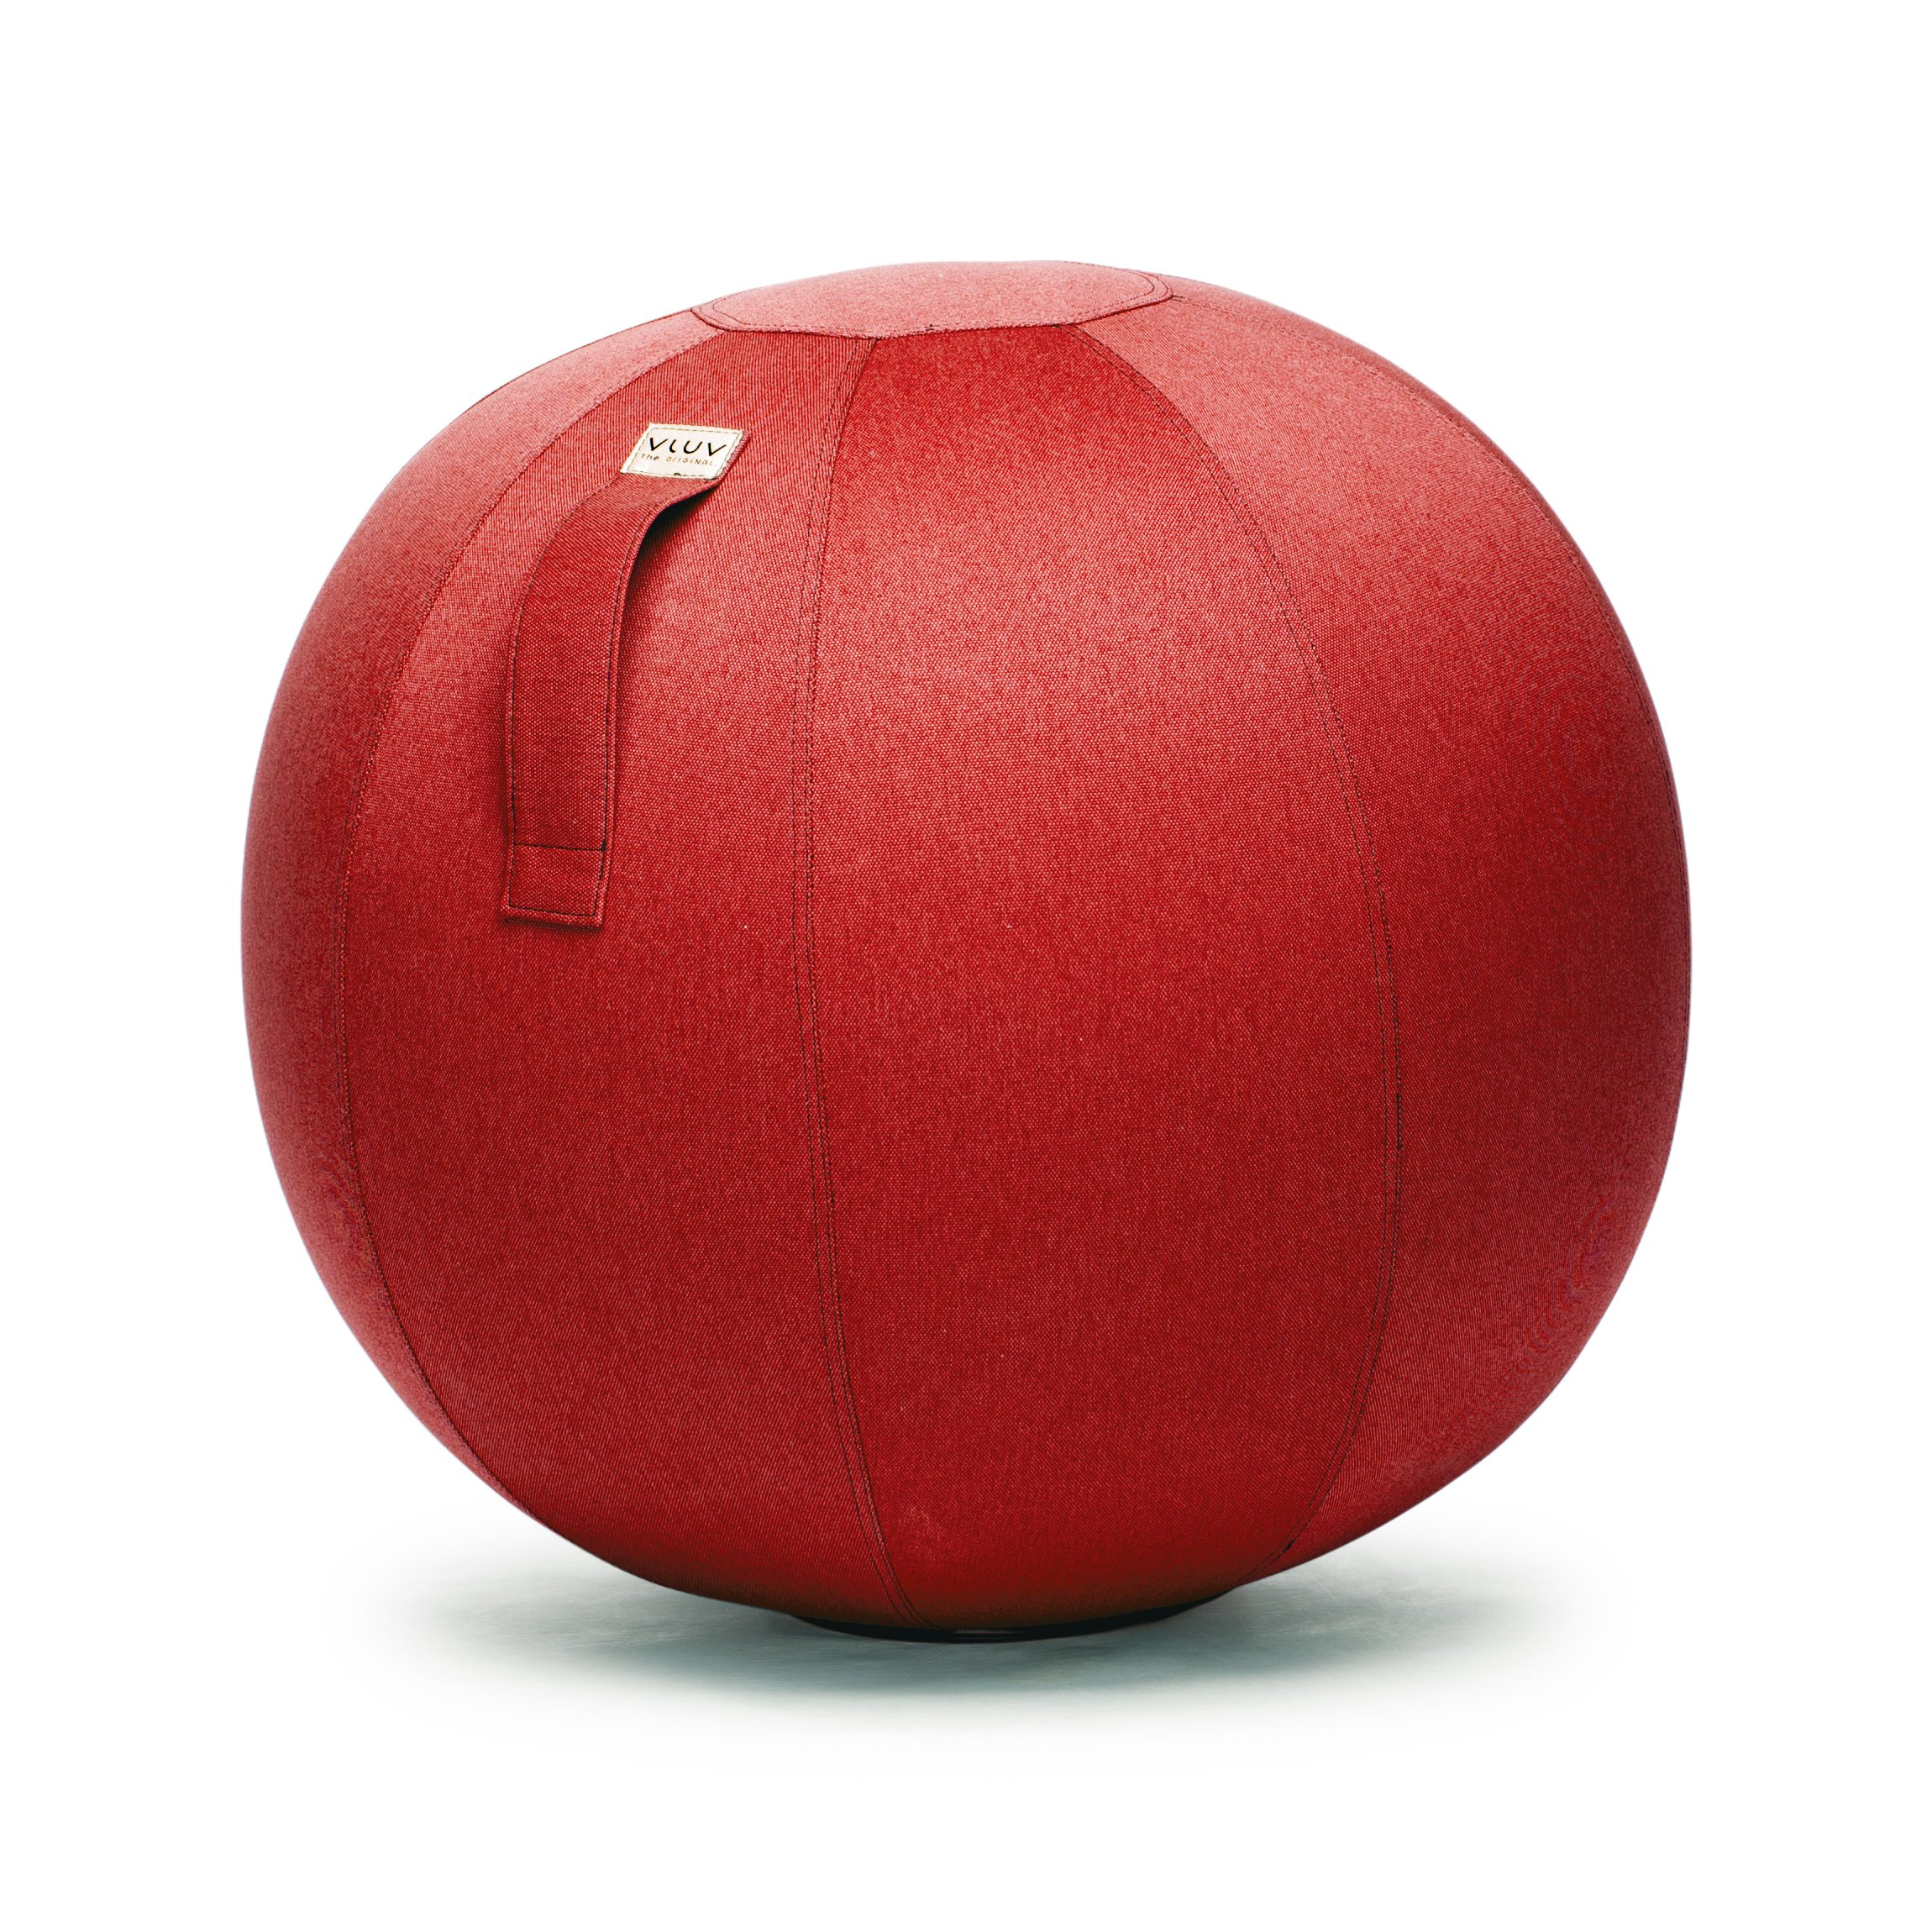 VLUV LEIV 29.5'' Premium Quality Self-Standing Sitting Ball with Handle - Home or Office Chair and Exercise Ball for Yoga, Stretching, or Gym Stone Colored Canvas Fabric (Ruby Colored, 25.6'')